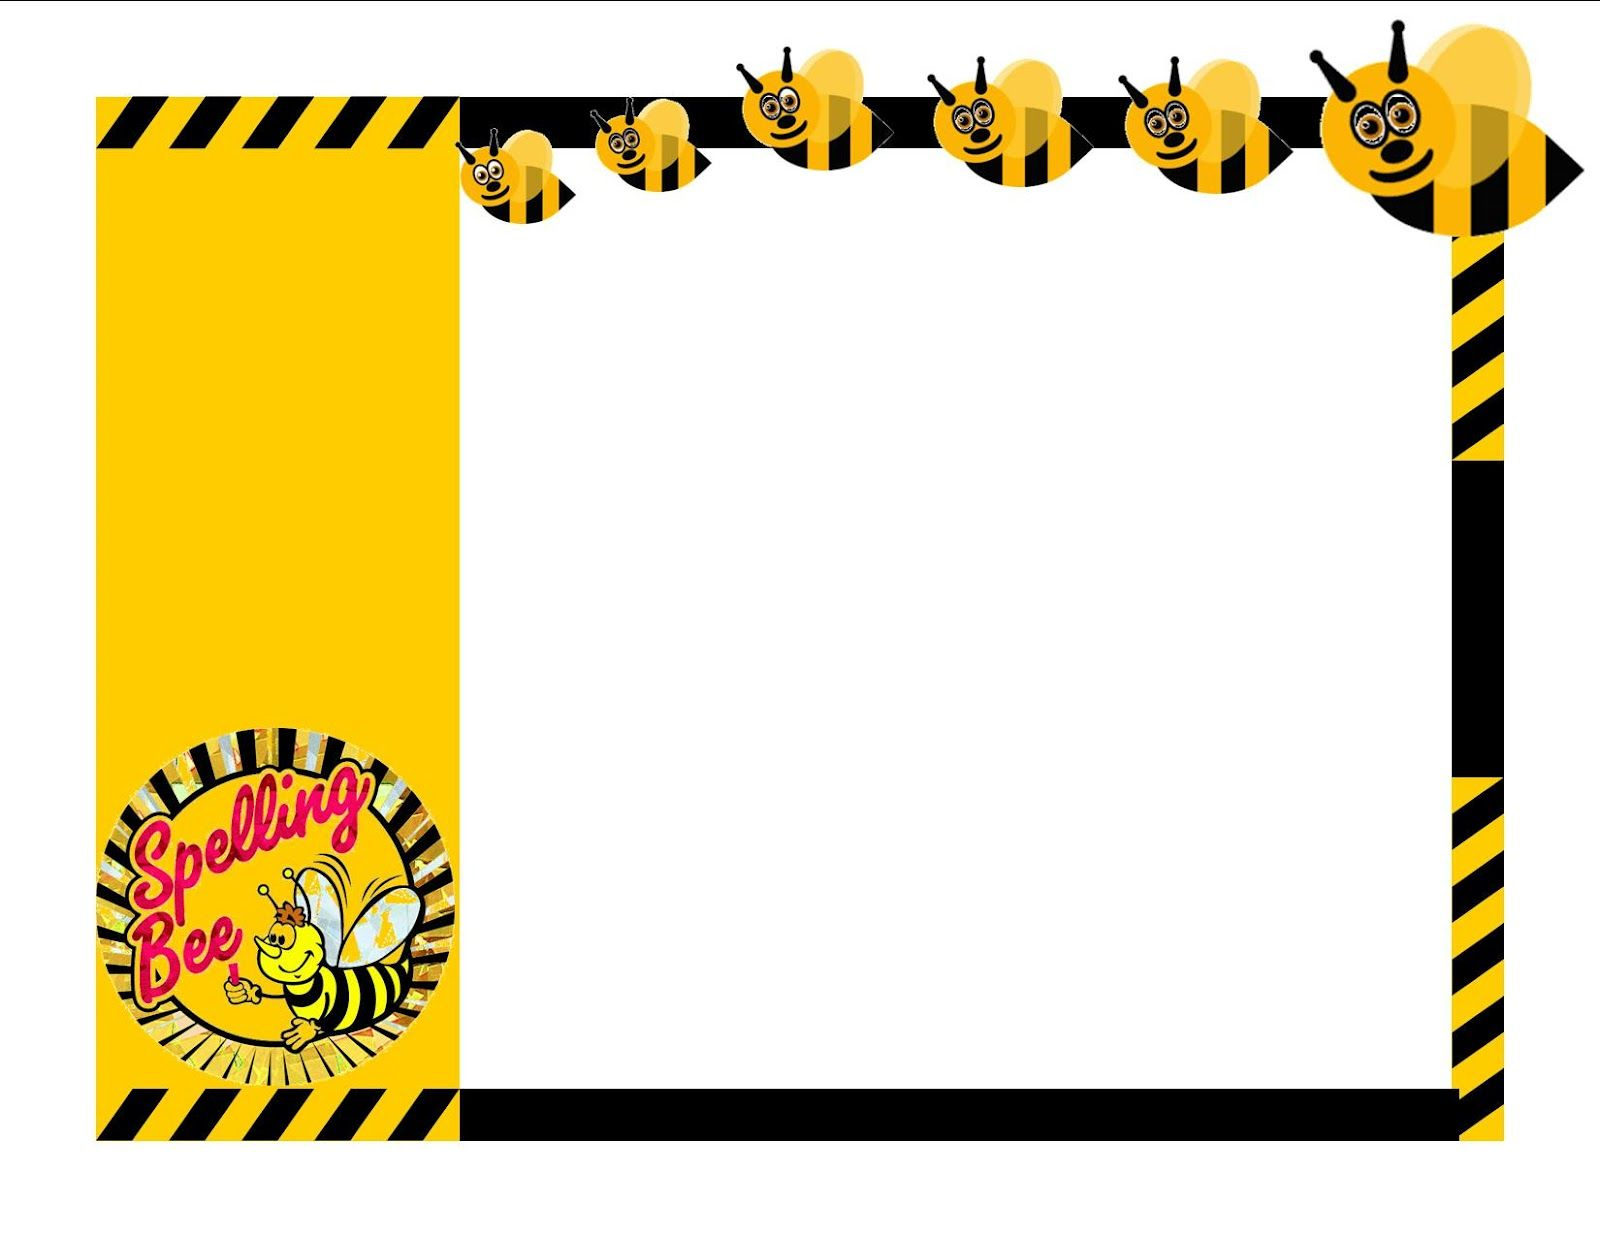 Spelling bee certificate clip art invitation templates for Spelling bee invitation template